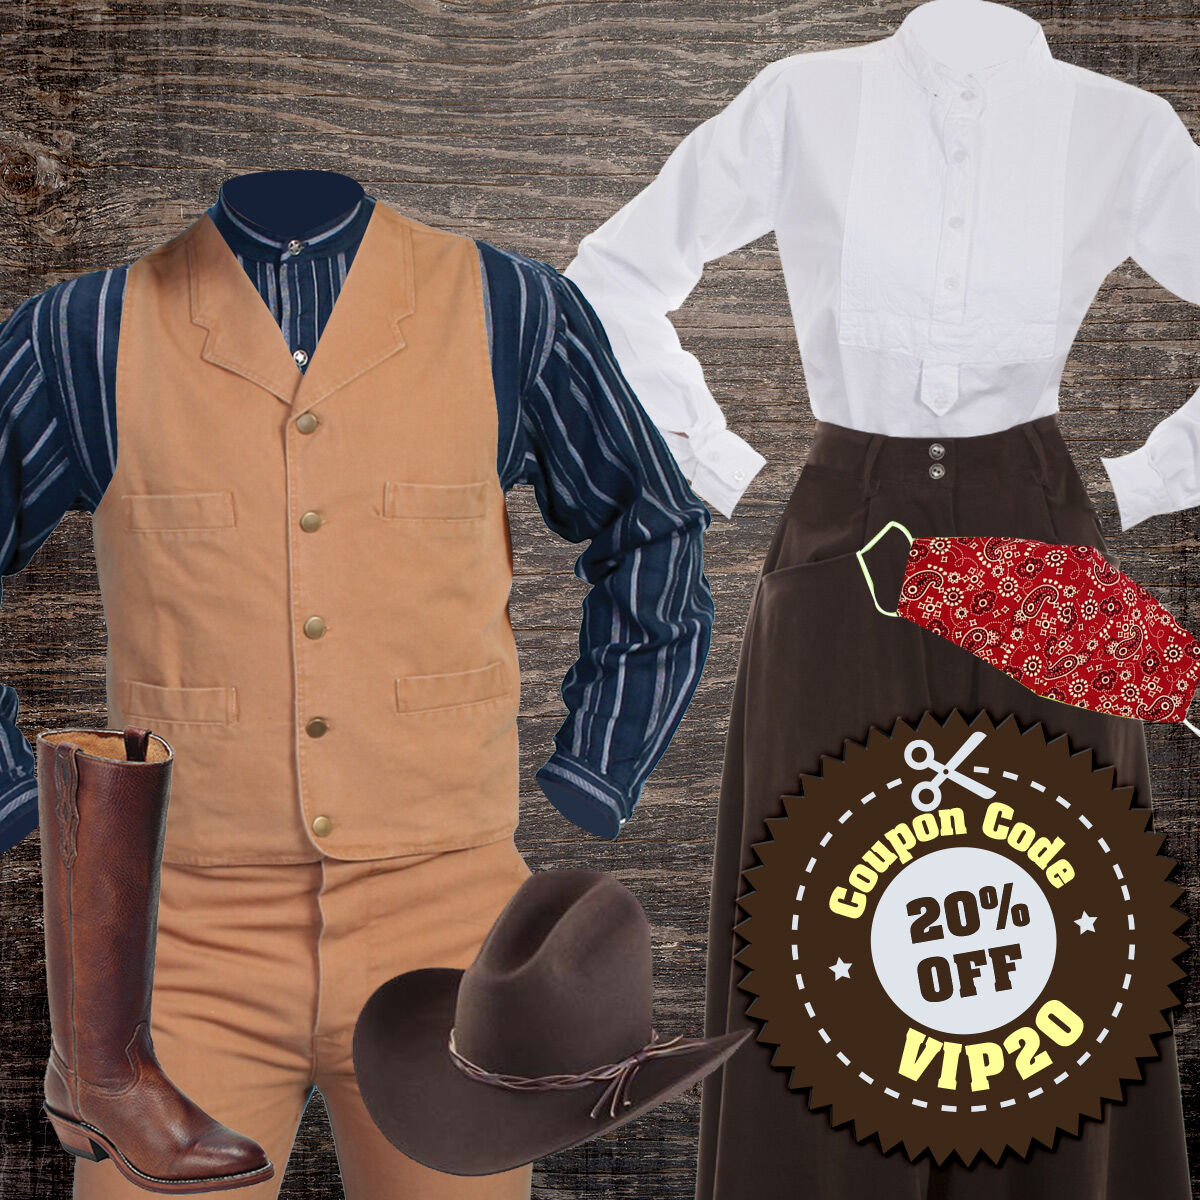 VIP Savings Starts Today! Save an EXTRA 20% Off Your Order 5 Days Only Use Coupon Code VIP20 at checkout. Plus Free Ground Shipping on orders over $100 Shop Now: https://bit.ly/3fC63p8 #wildwestmercantile #vintagecowboy #oldwestclothes #victorianclothes #VIPSavings #wildwest pic.twitter.com/OdffdALRLB